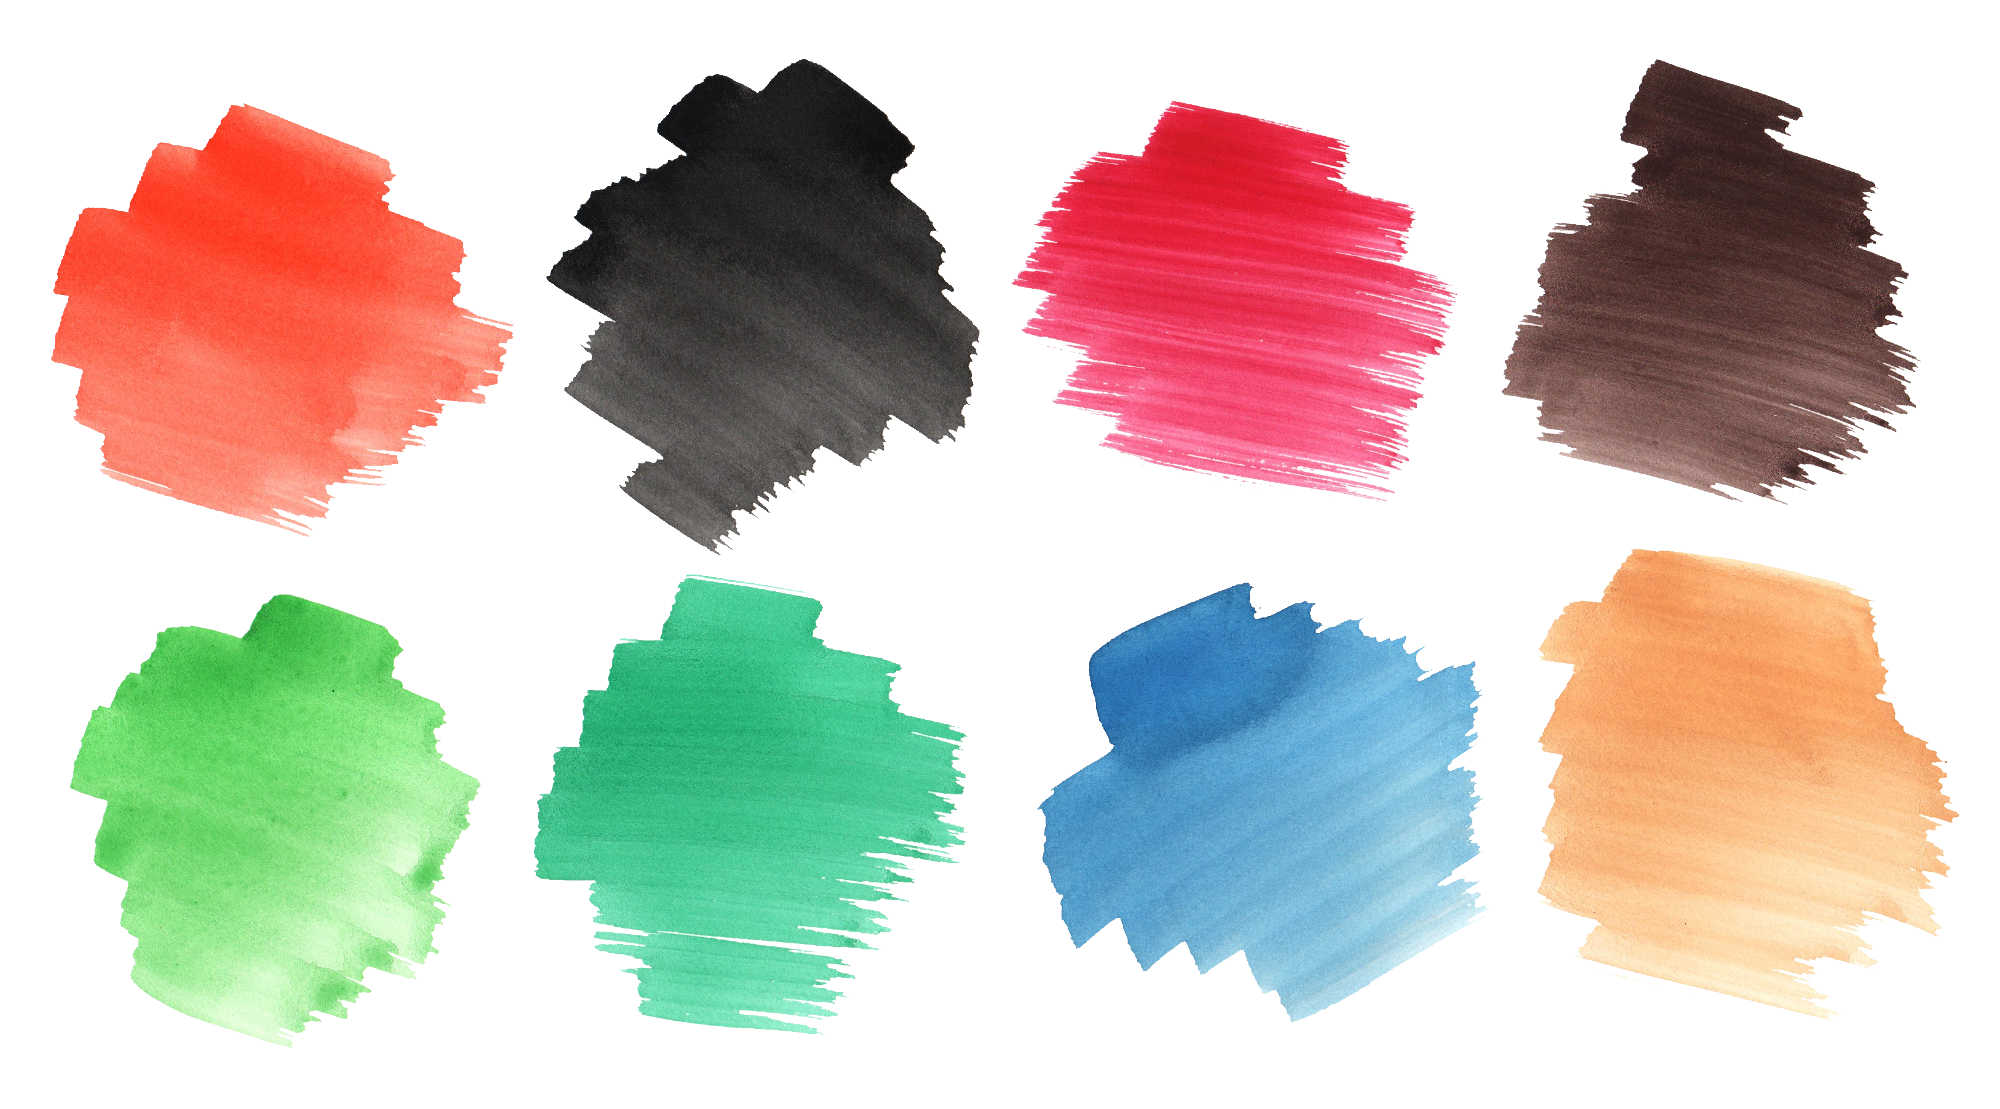 Book Cover Watercolor Brushes : Watercolor brush texture png transparent onlygfx